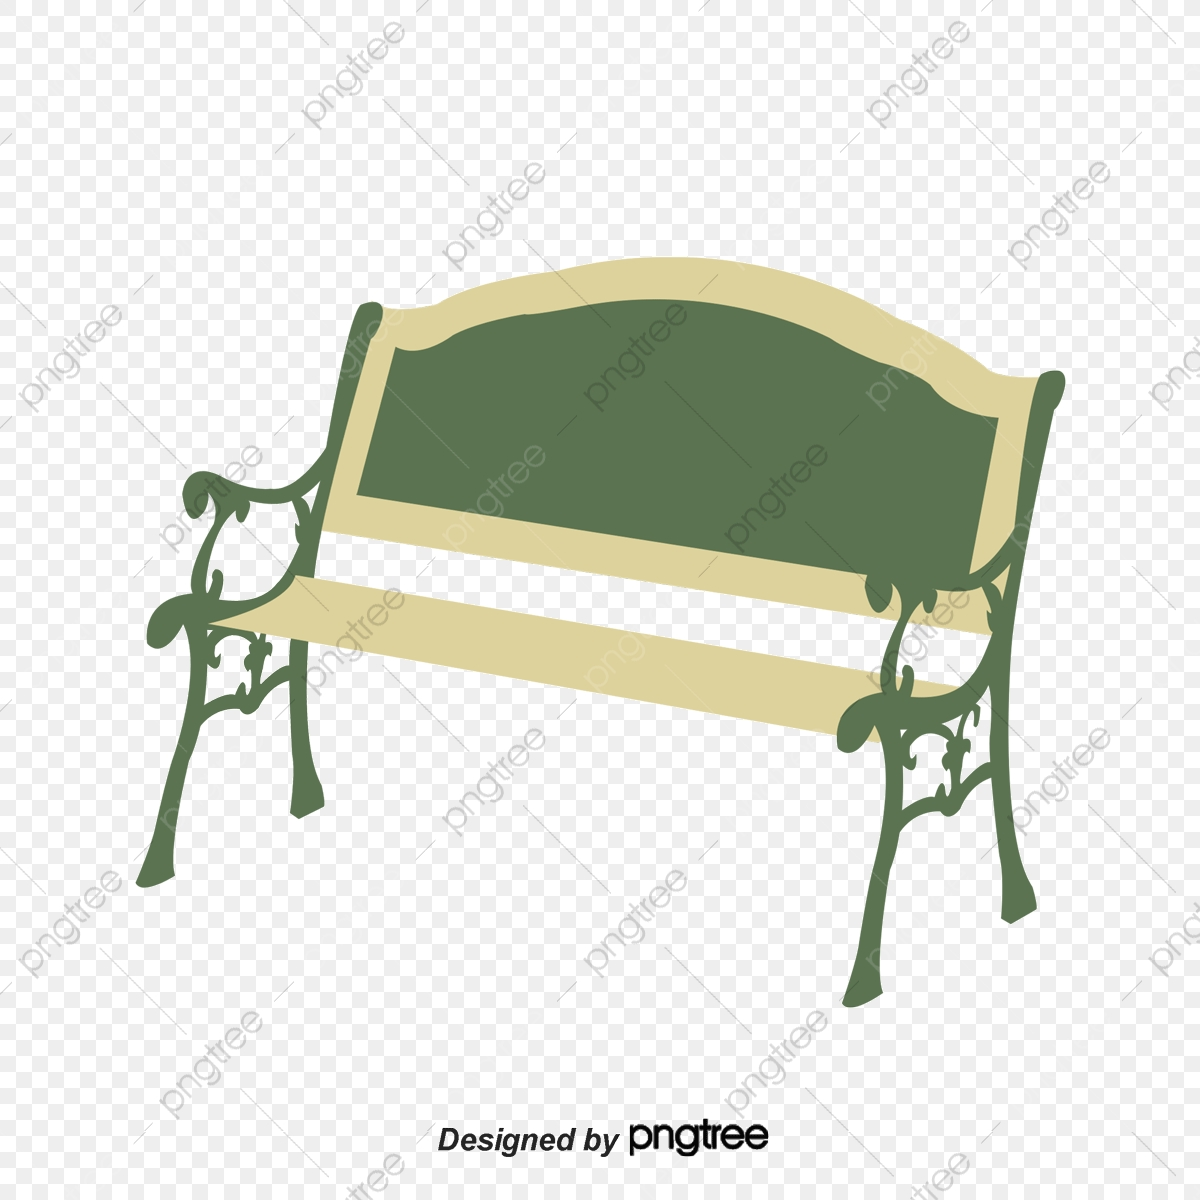 Miraculous Park Bench Chair Furniture Furniture Clipart Park Bench Creativecarmelina Interior Chair Design Creativecarmelinacom